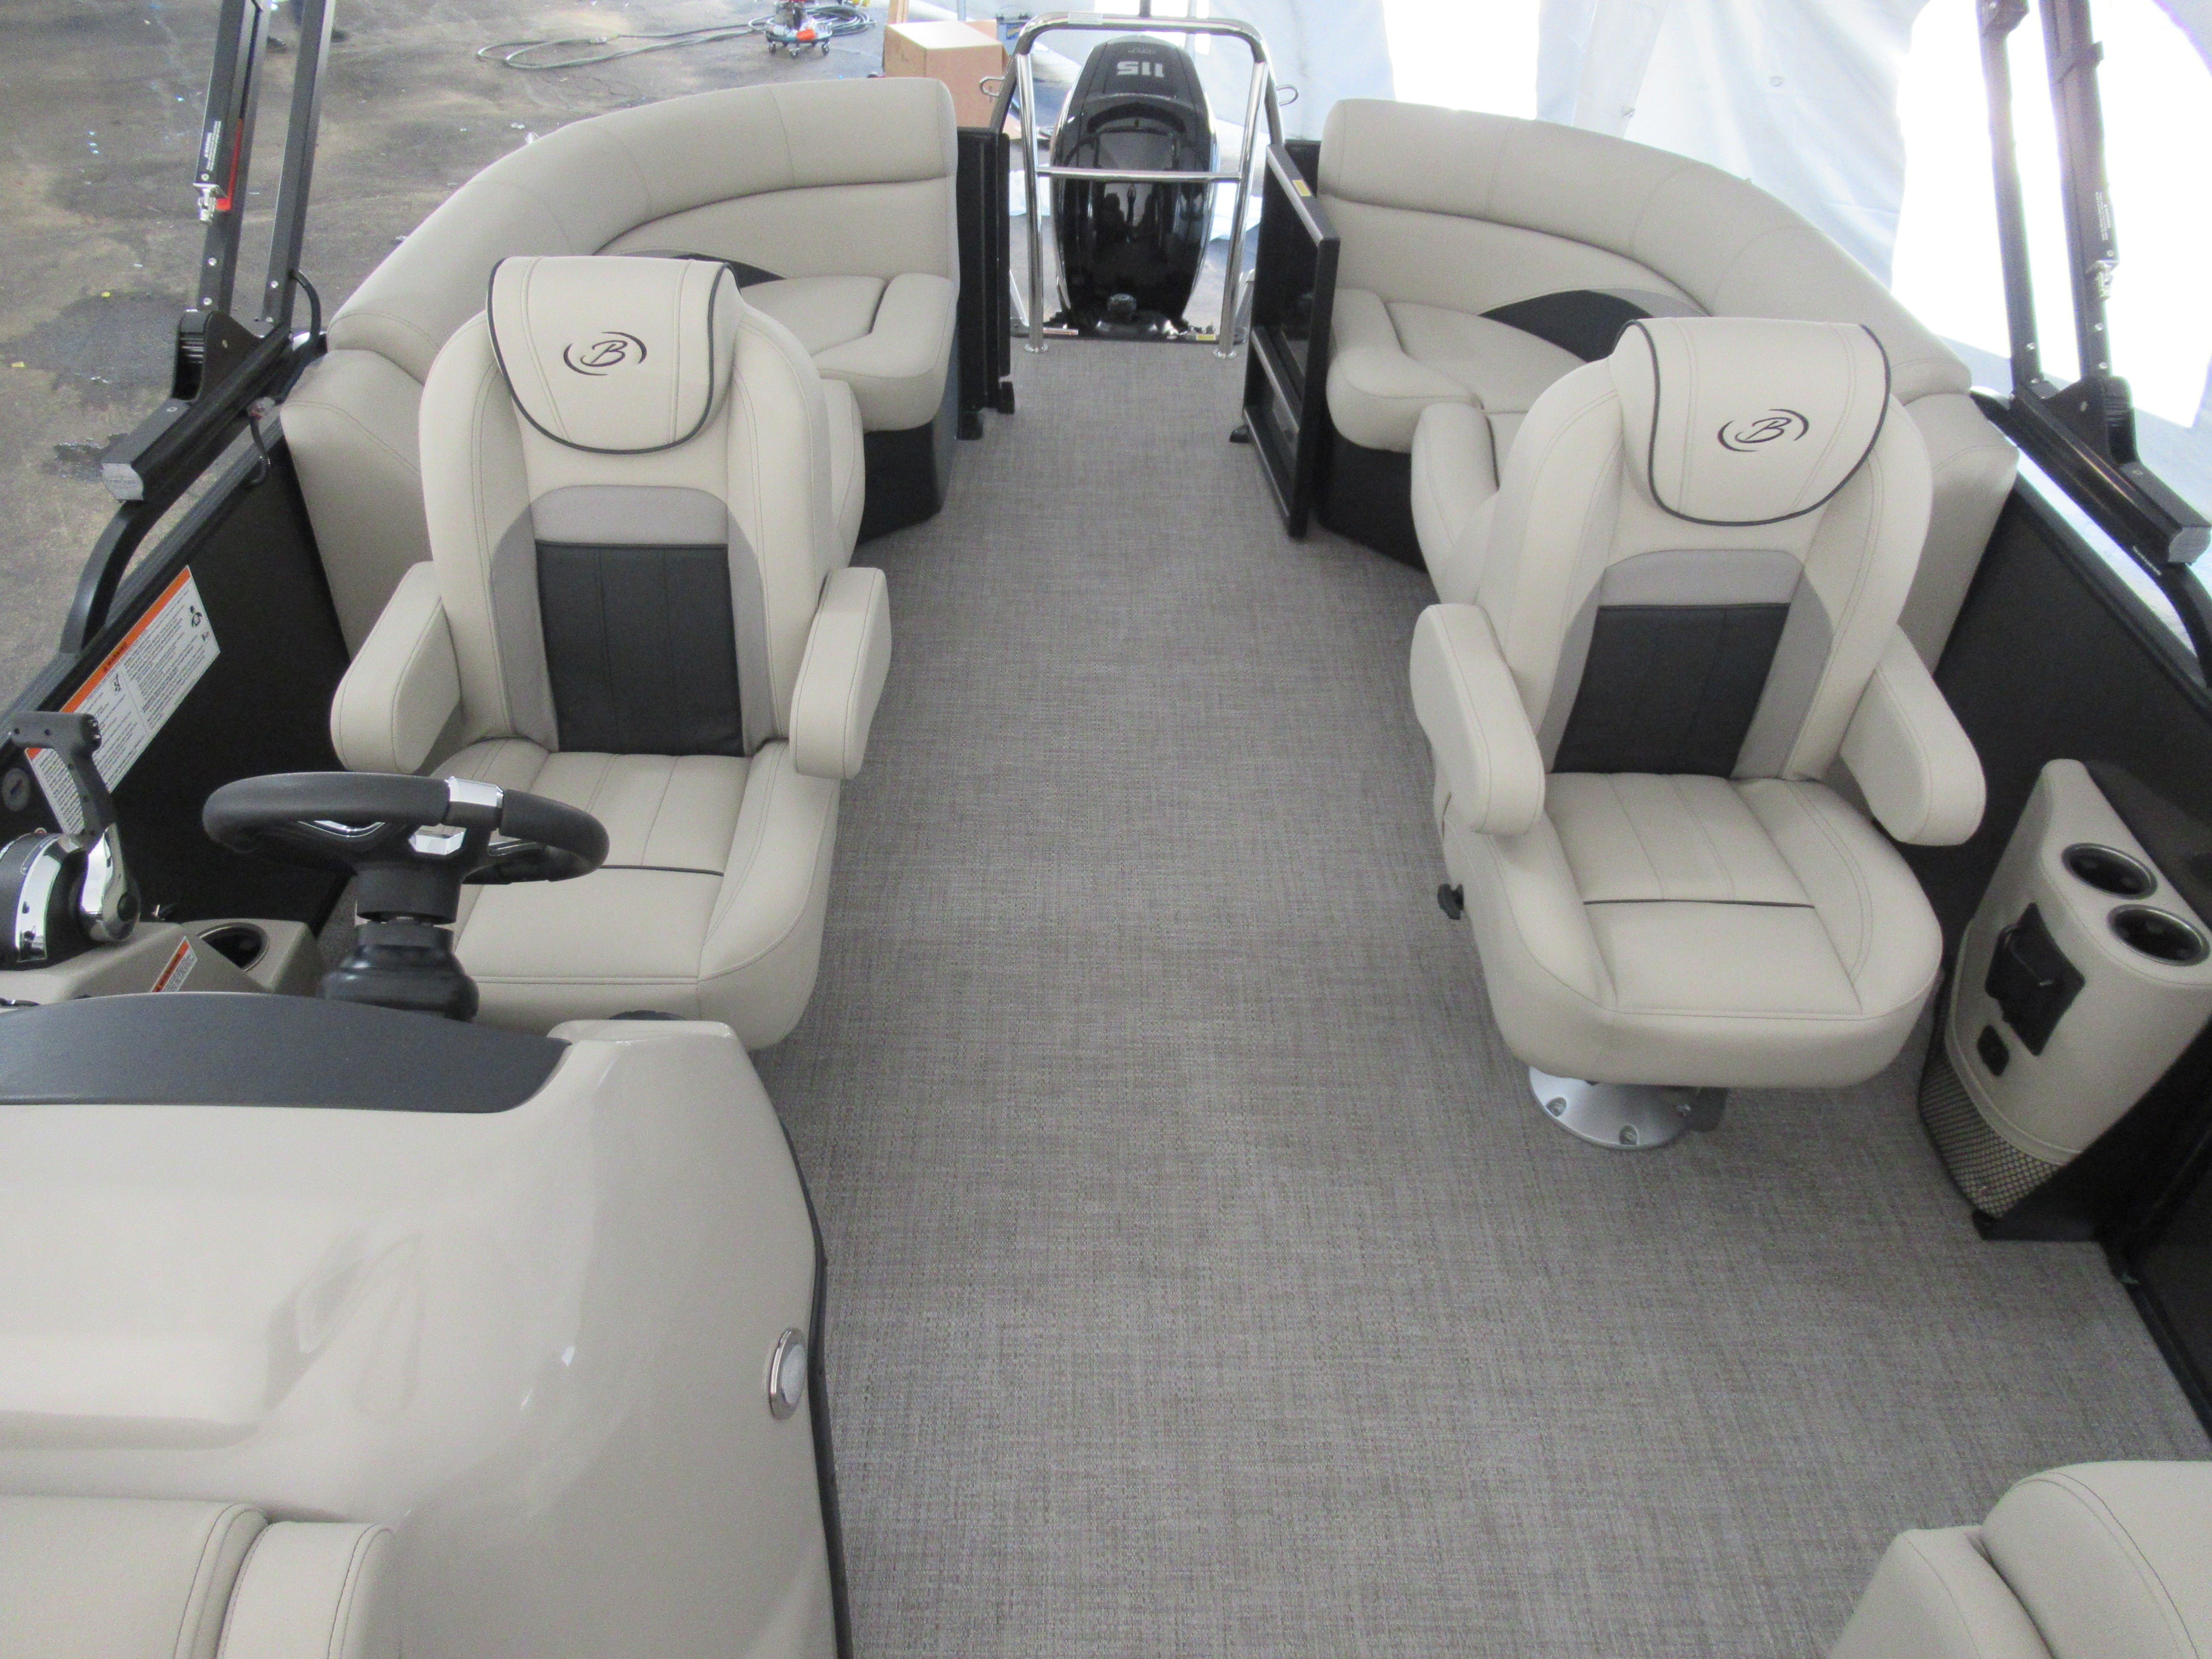 2021 Barletta boat for sale, model of the boat is C20QC & Image # 5 of 11